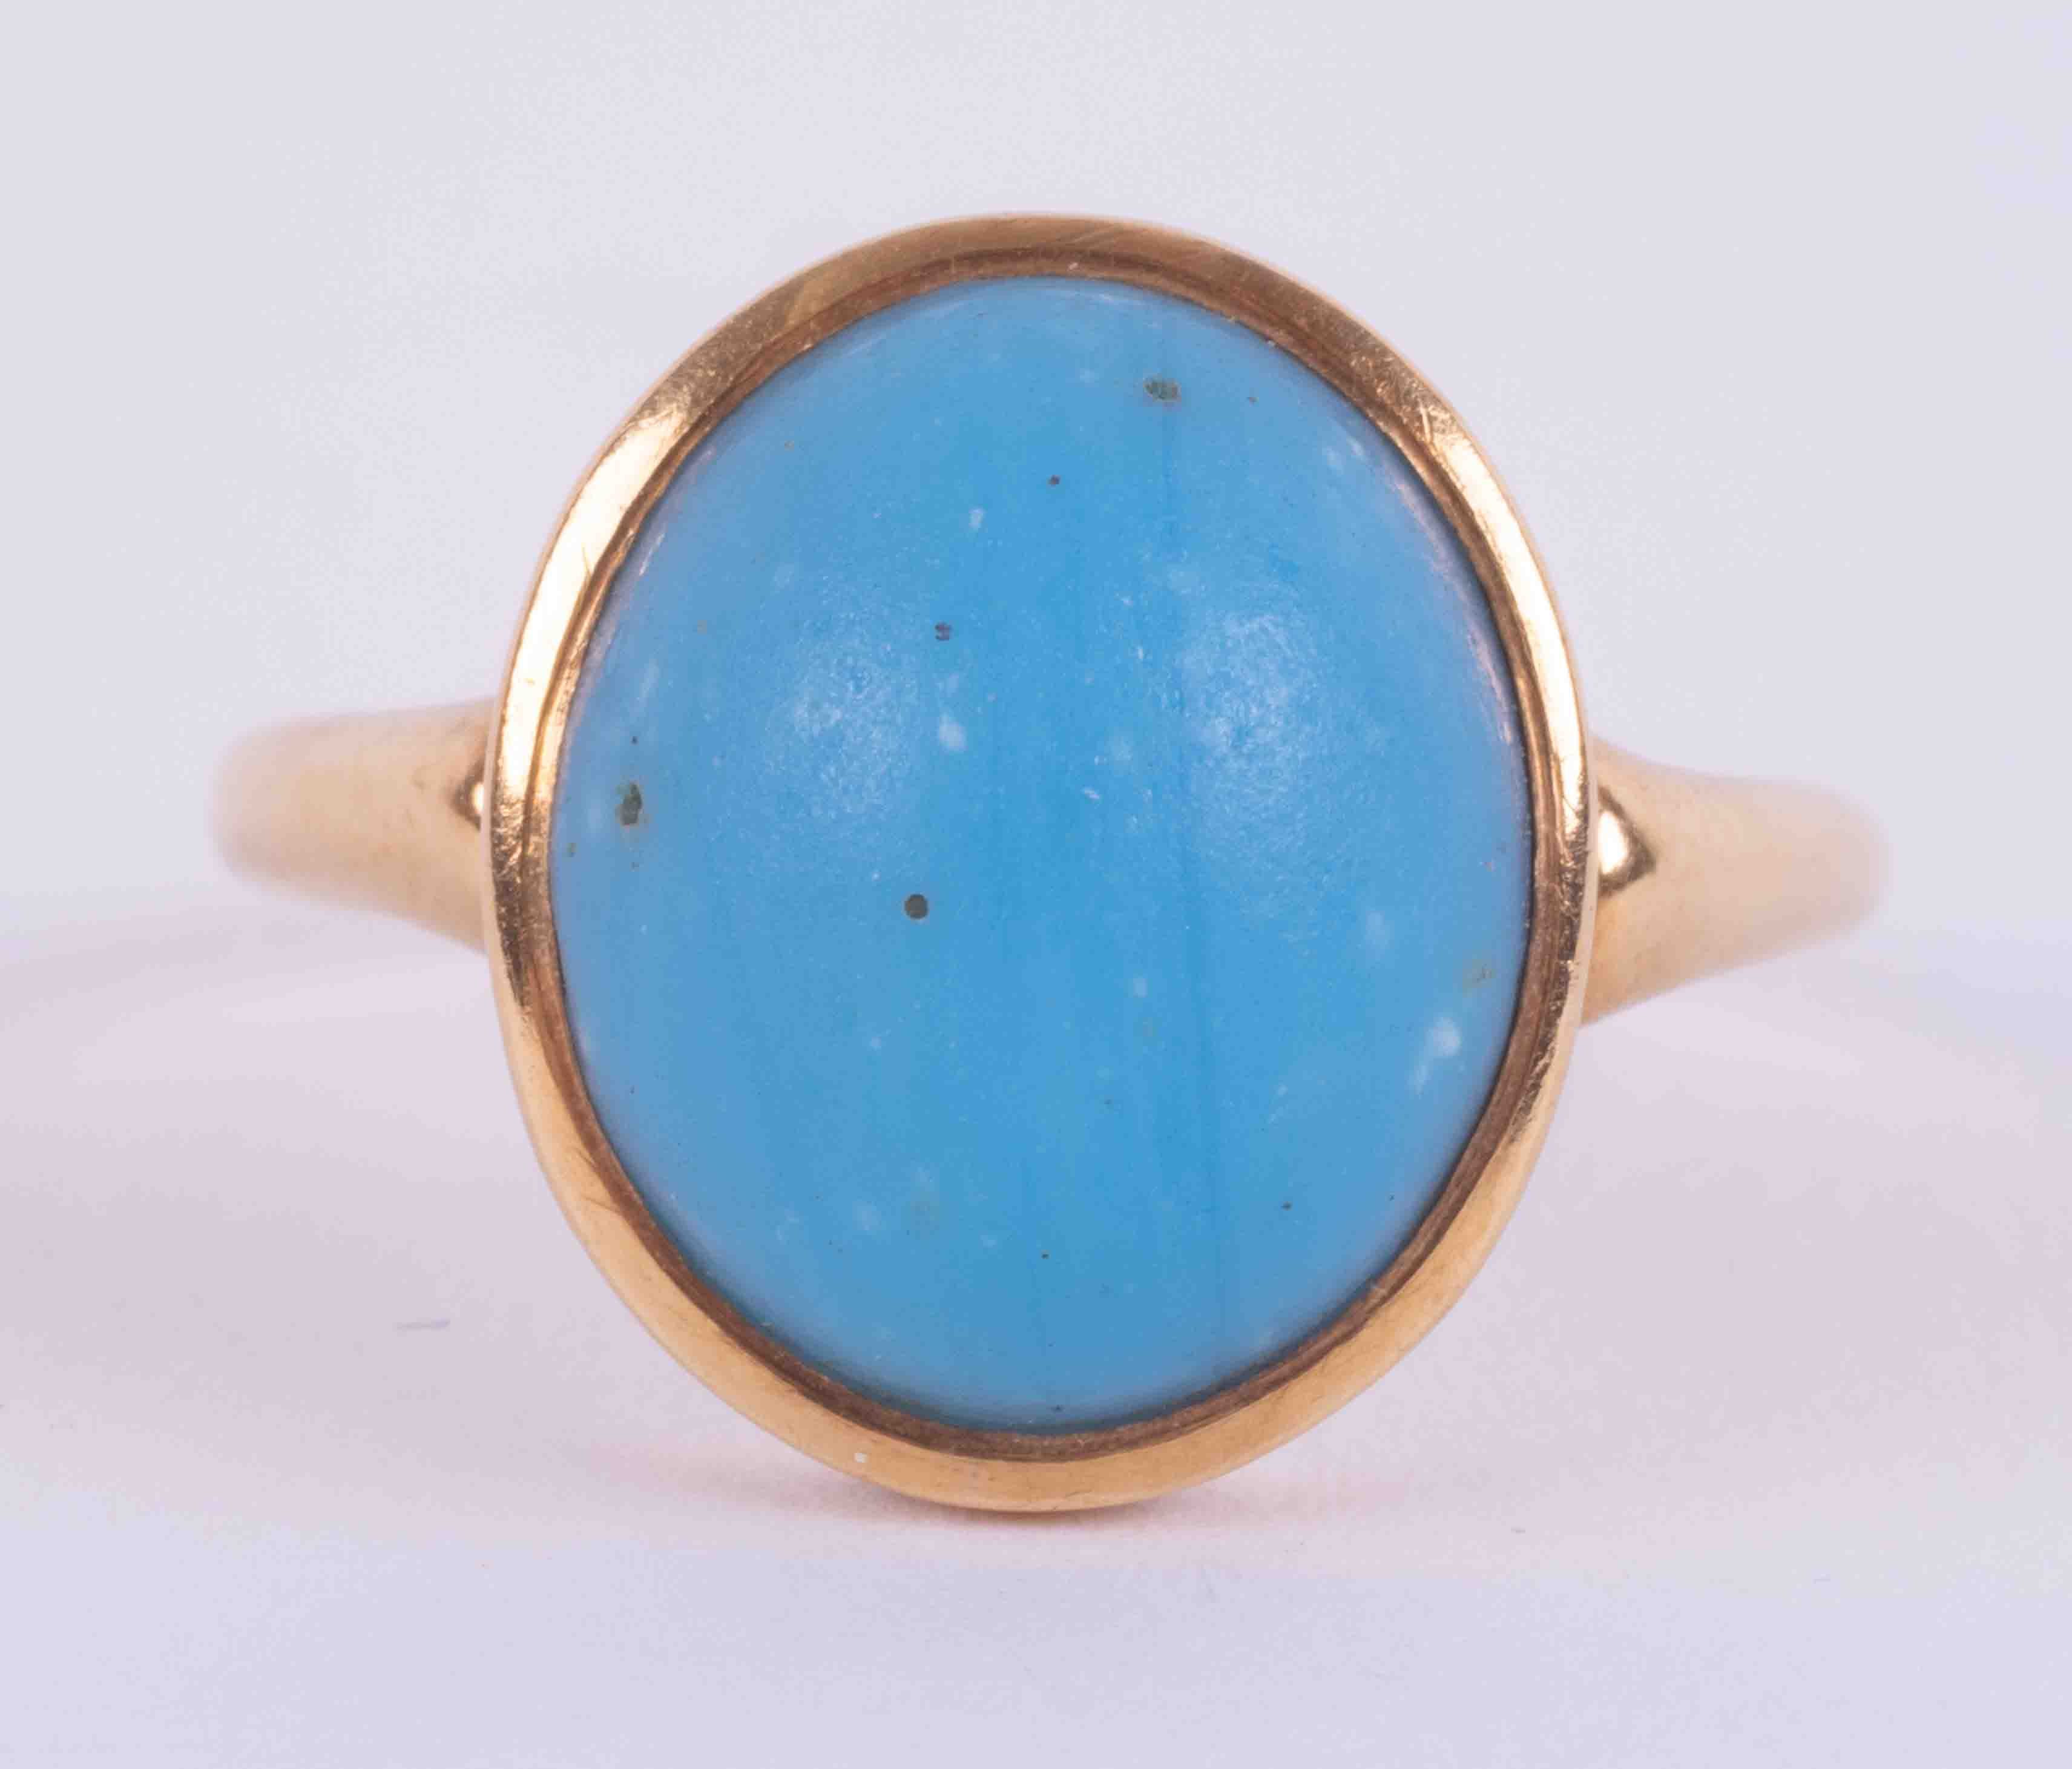 An 18ct yellow gold ring set with an oval cabochon cut turquoise measuring approx. 12.7mm x 11mm,